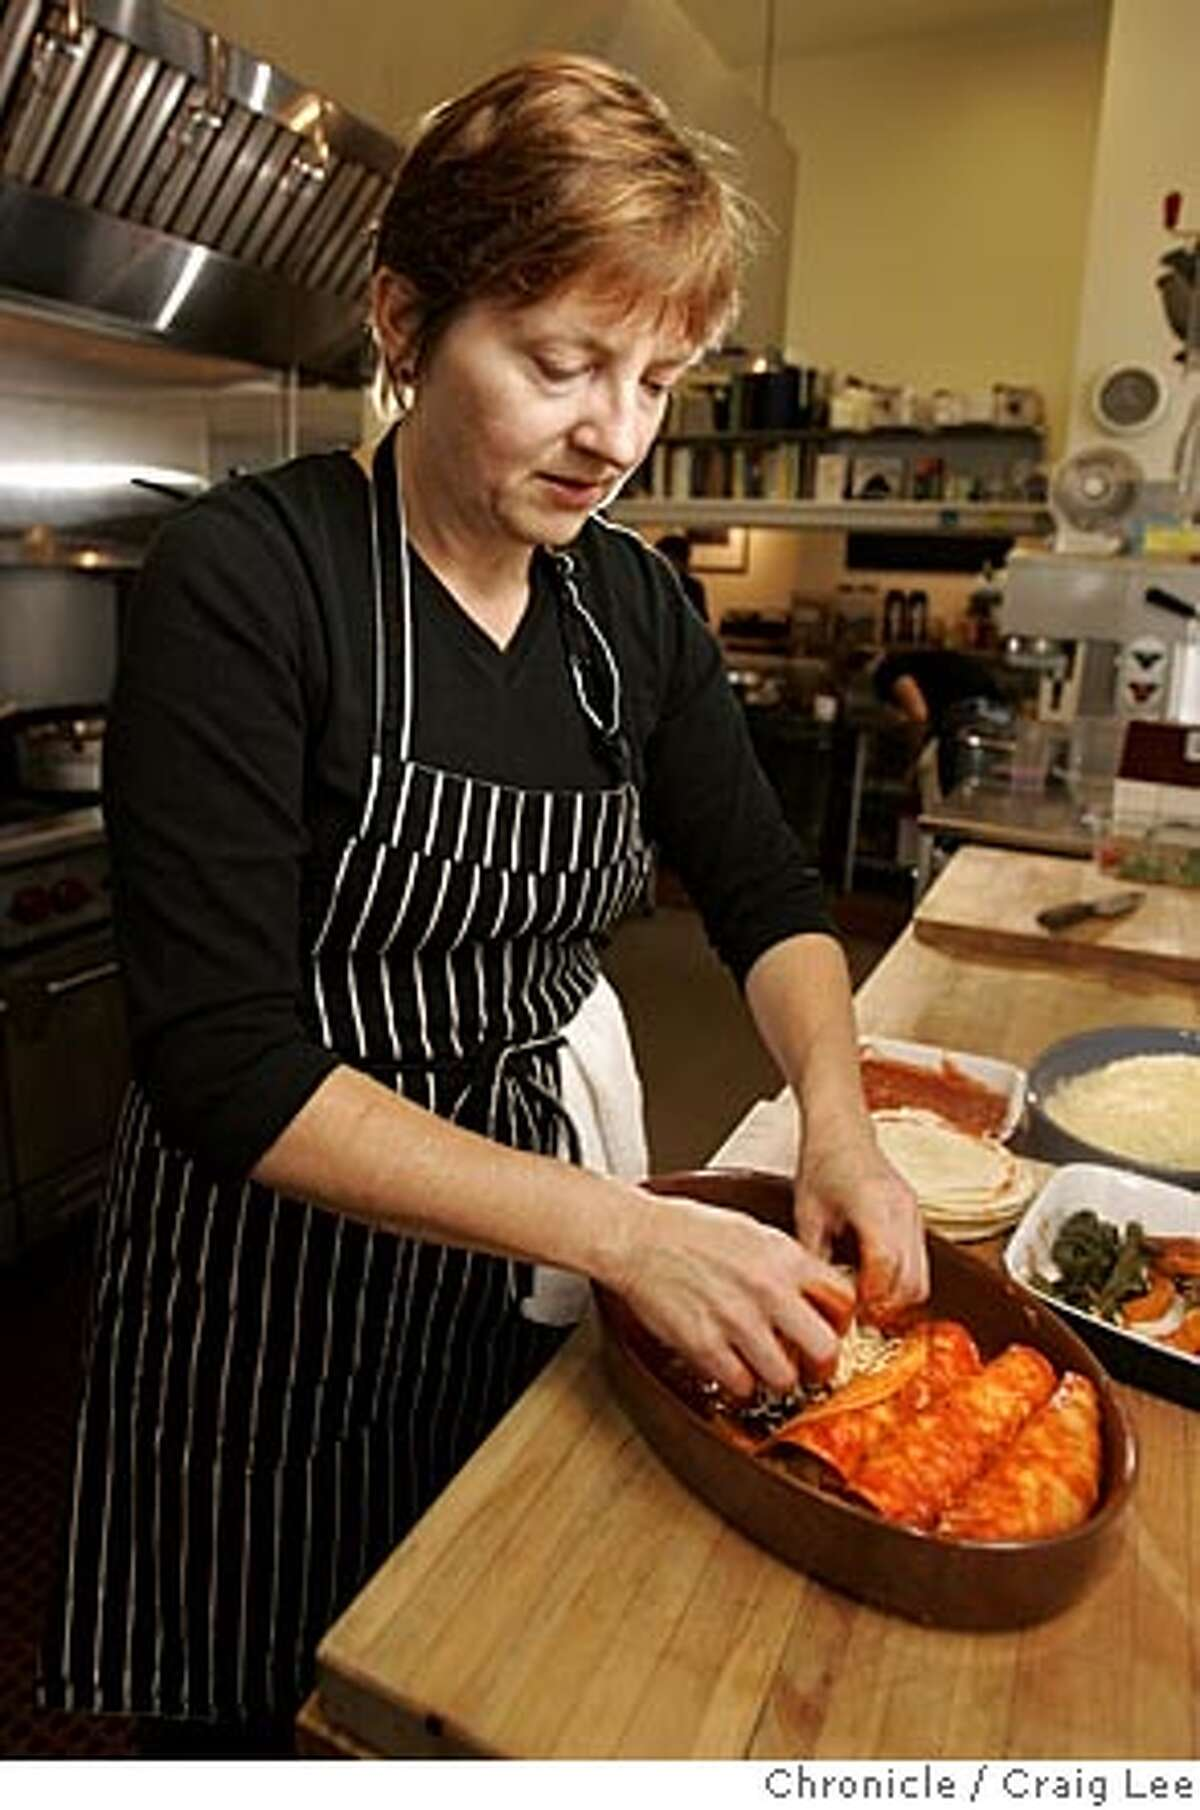 Seasonal Cook column on how to use butternut squash. Chef Tracy Bates, the head cook at the Oxbow School, a private art school in Napa. Tracy Bates is preparing her recipe for butternut squash enchiladas. Event on 10/19/05 in Napa. Craig Lee / The Chronicle